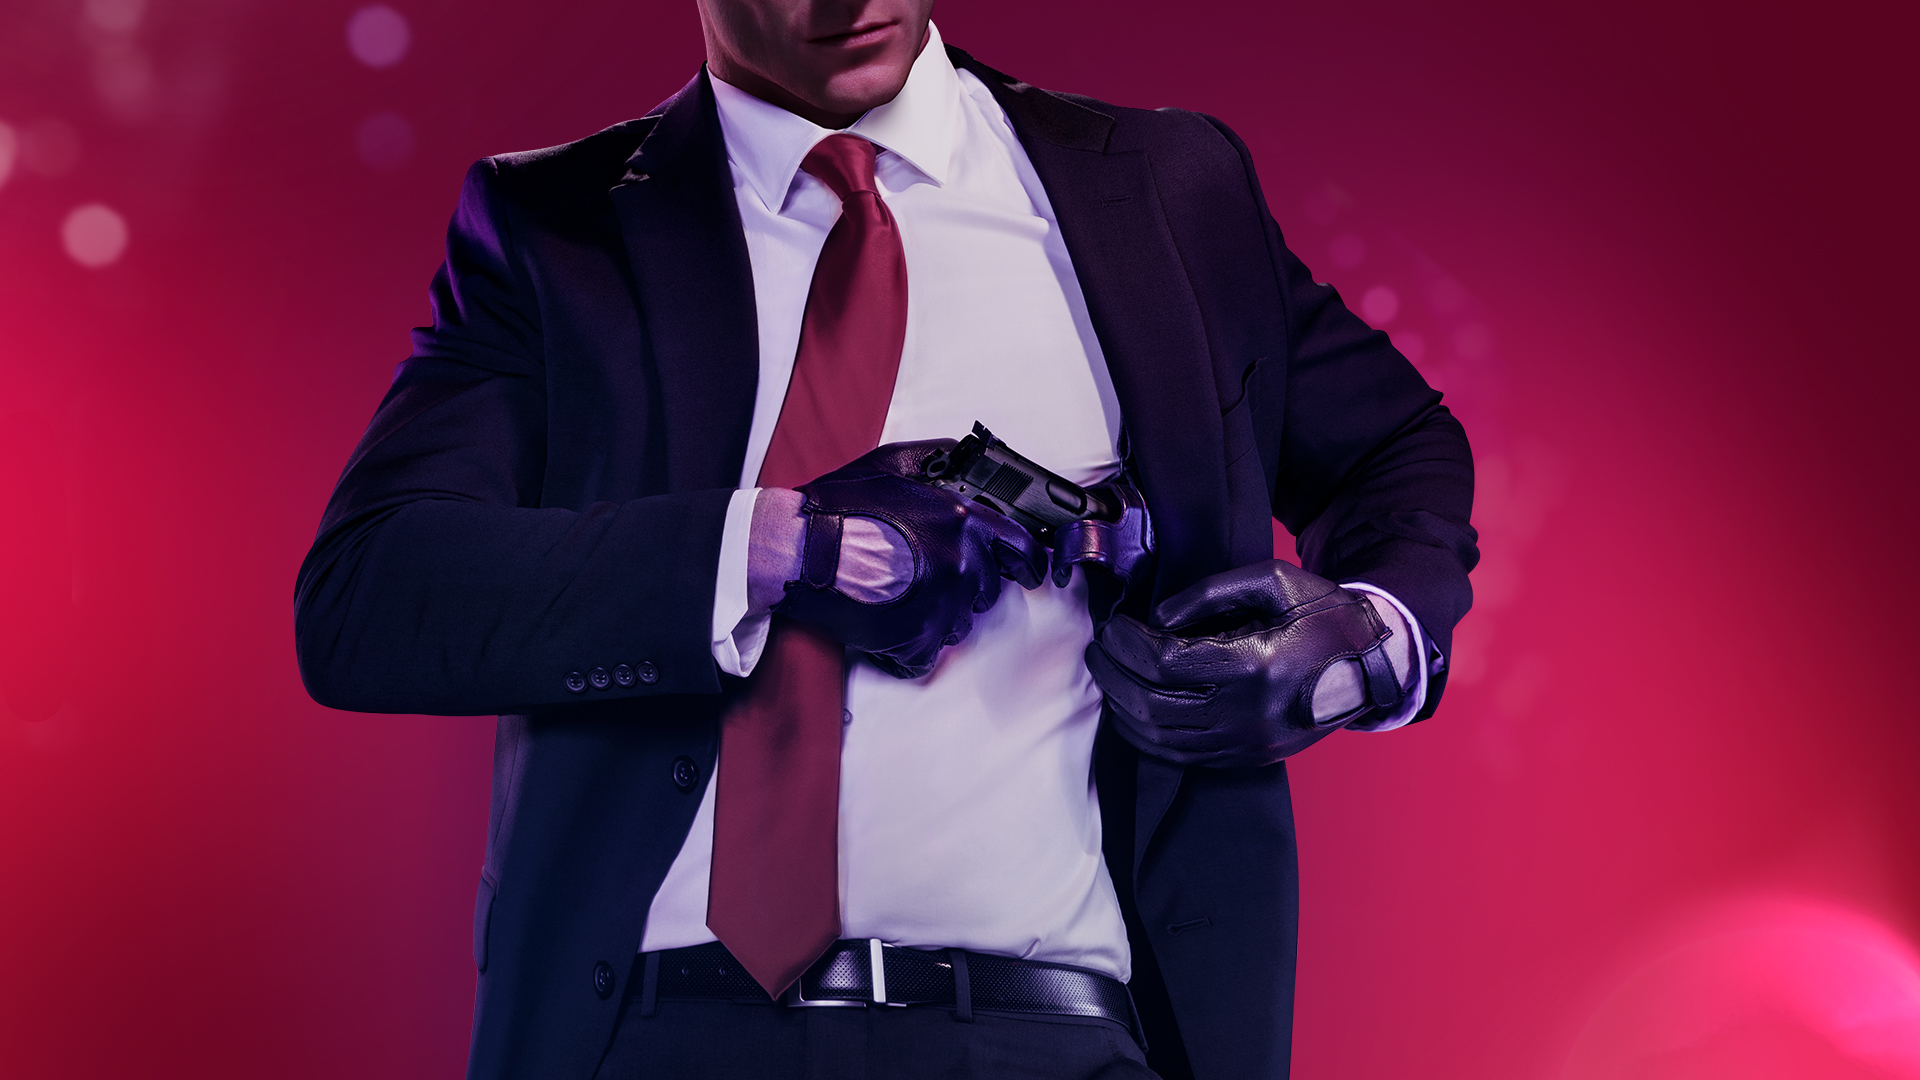 Hitman 2 Hd Games 4k Wallpapers Images Backgrounds Photos And